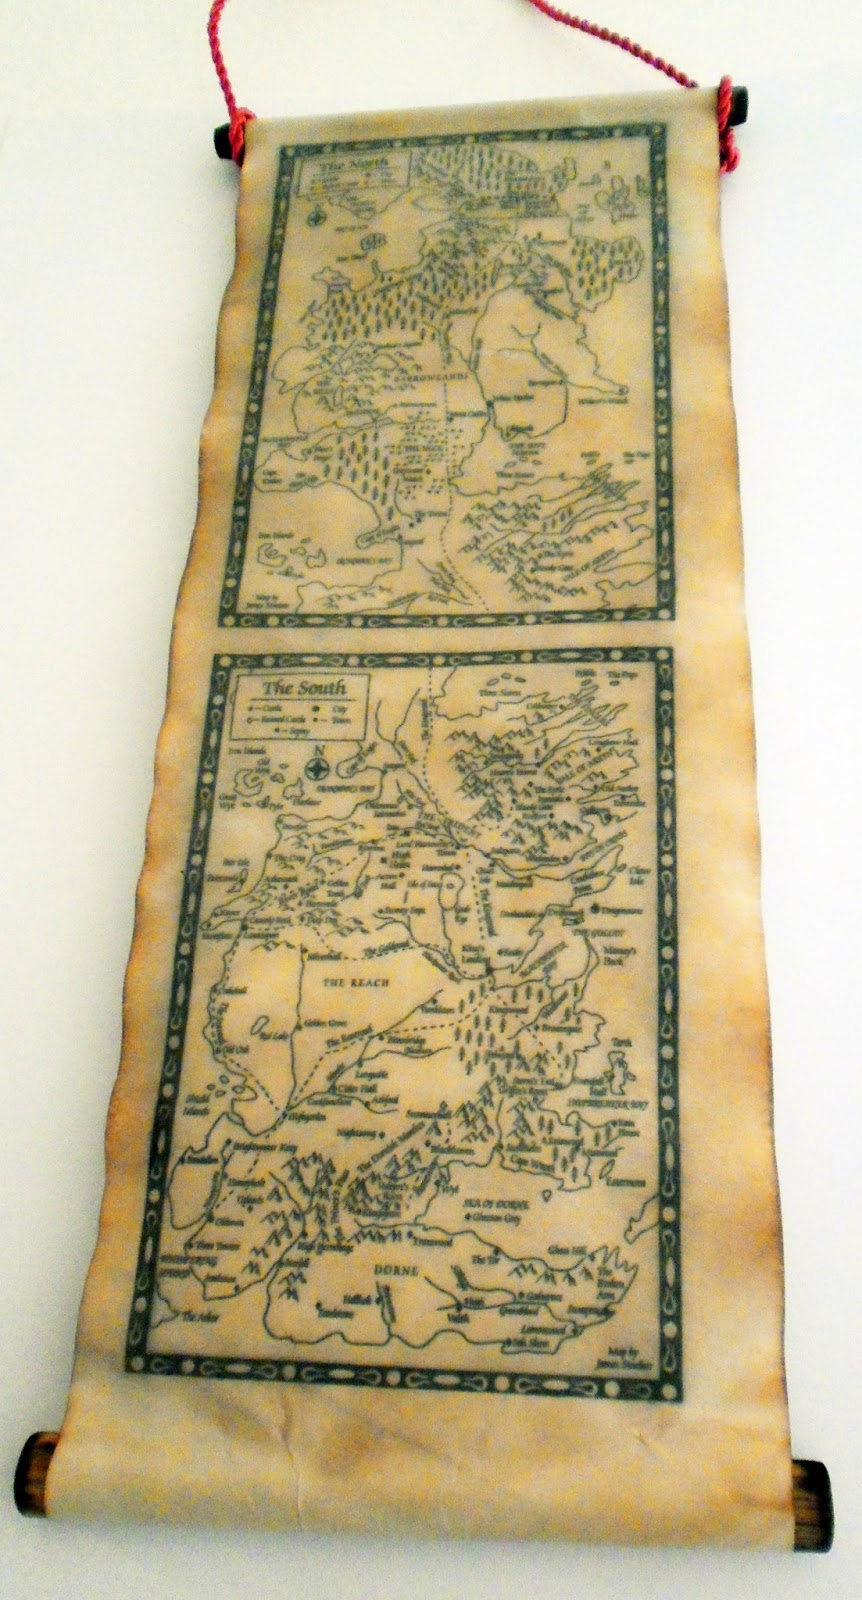 image relating to Printable Map of Westeros referred to as Land of Scrolls: Map of Westeros The North and The South